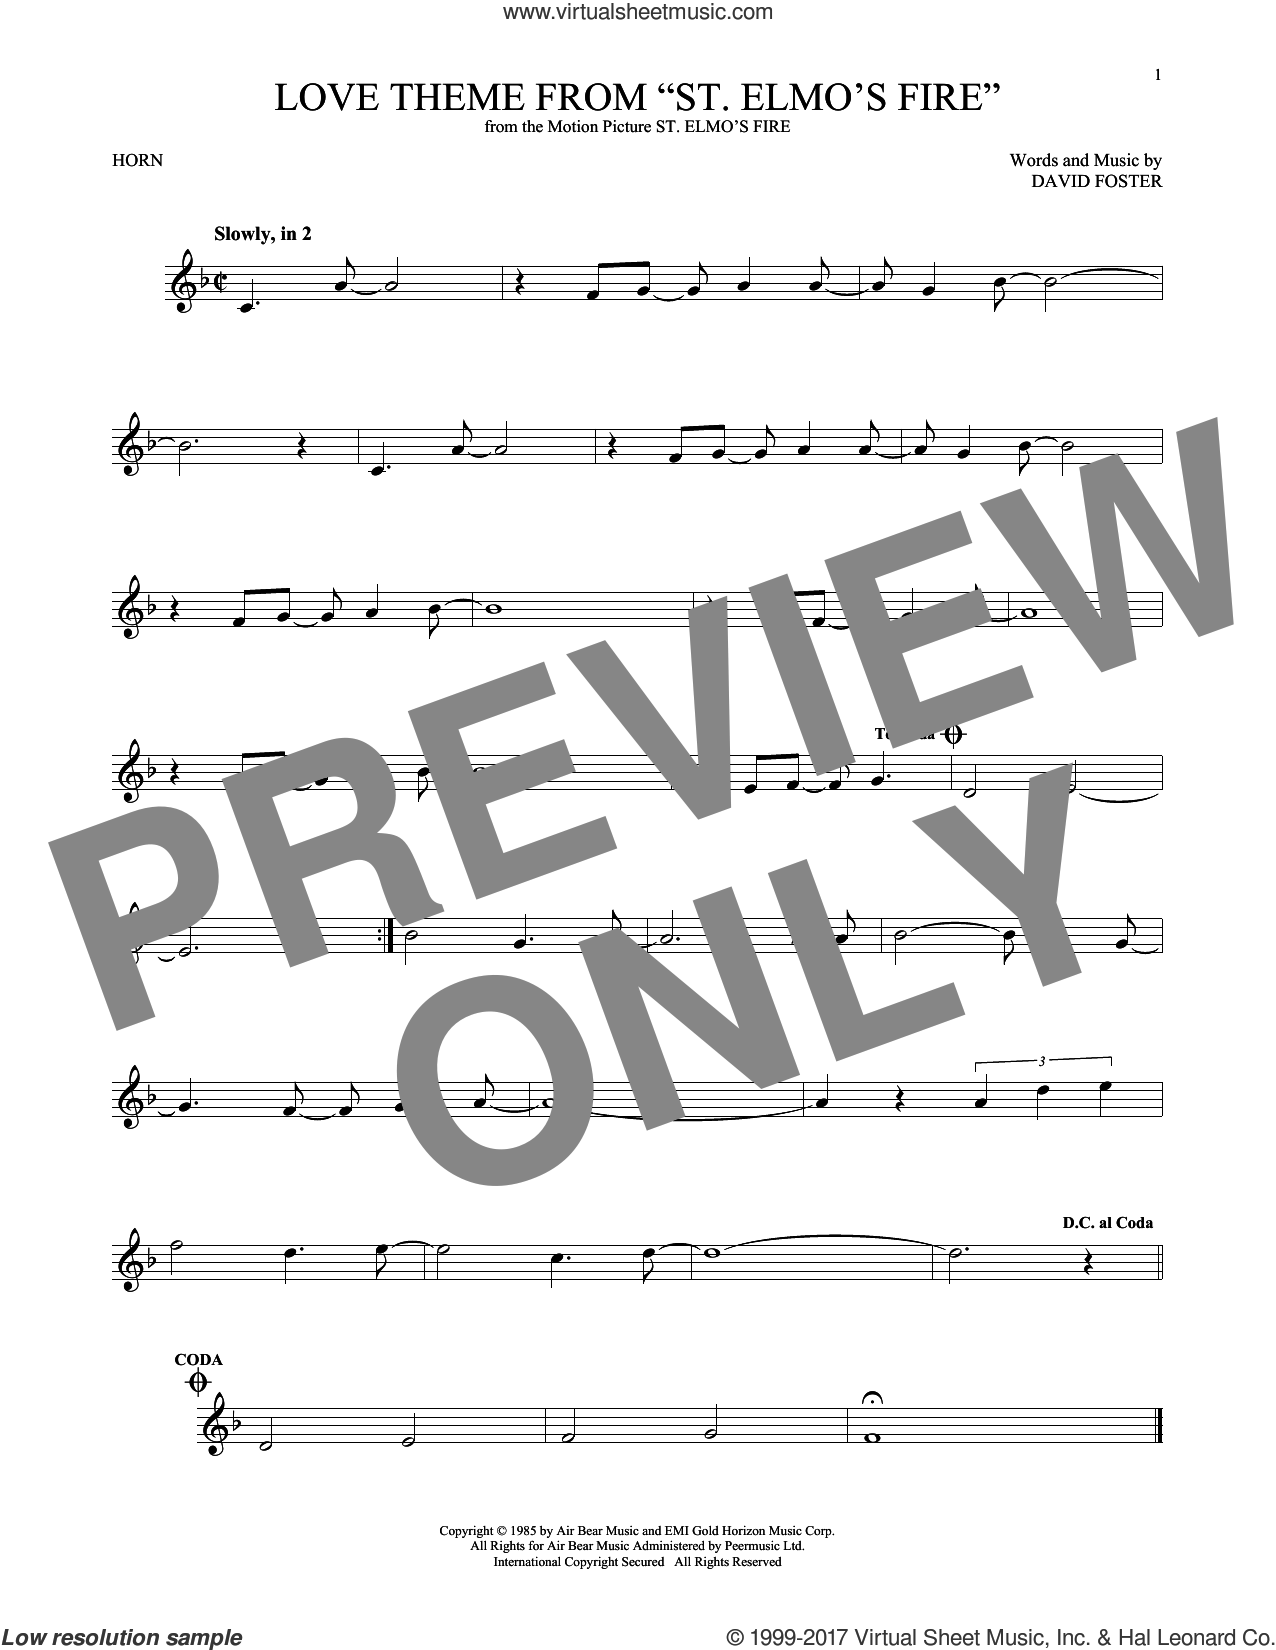 Love Theme From 'St. Elmo's Fire' sheet music for horn solo by David Foster, intermediate skill level